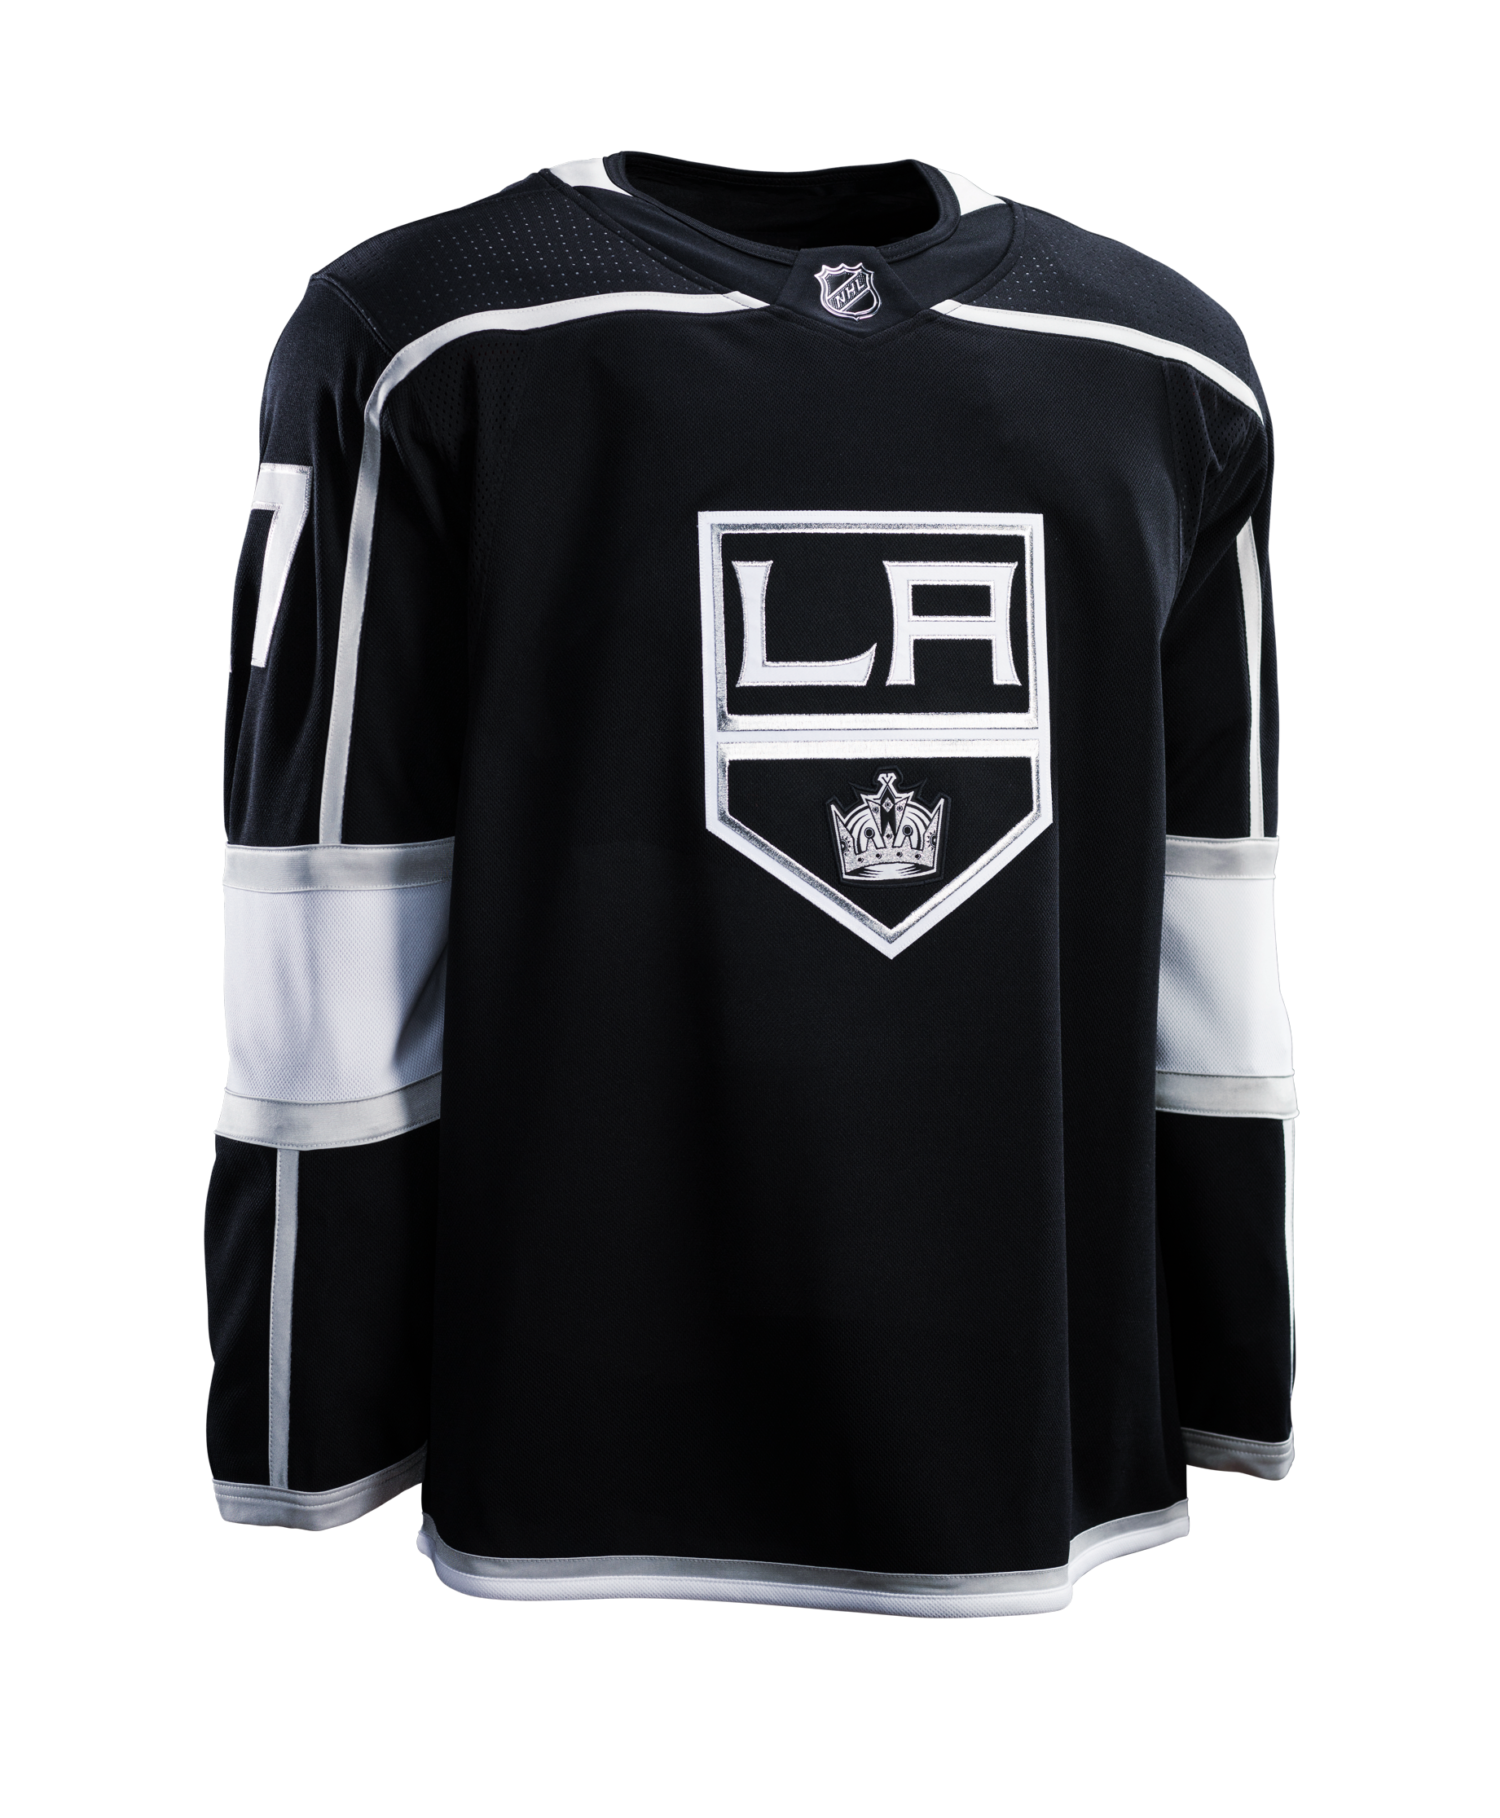 new product 723b3 f86bb NHL Adidas jerseys revealed; minor changes for most teams ...